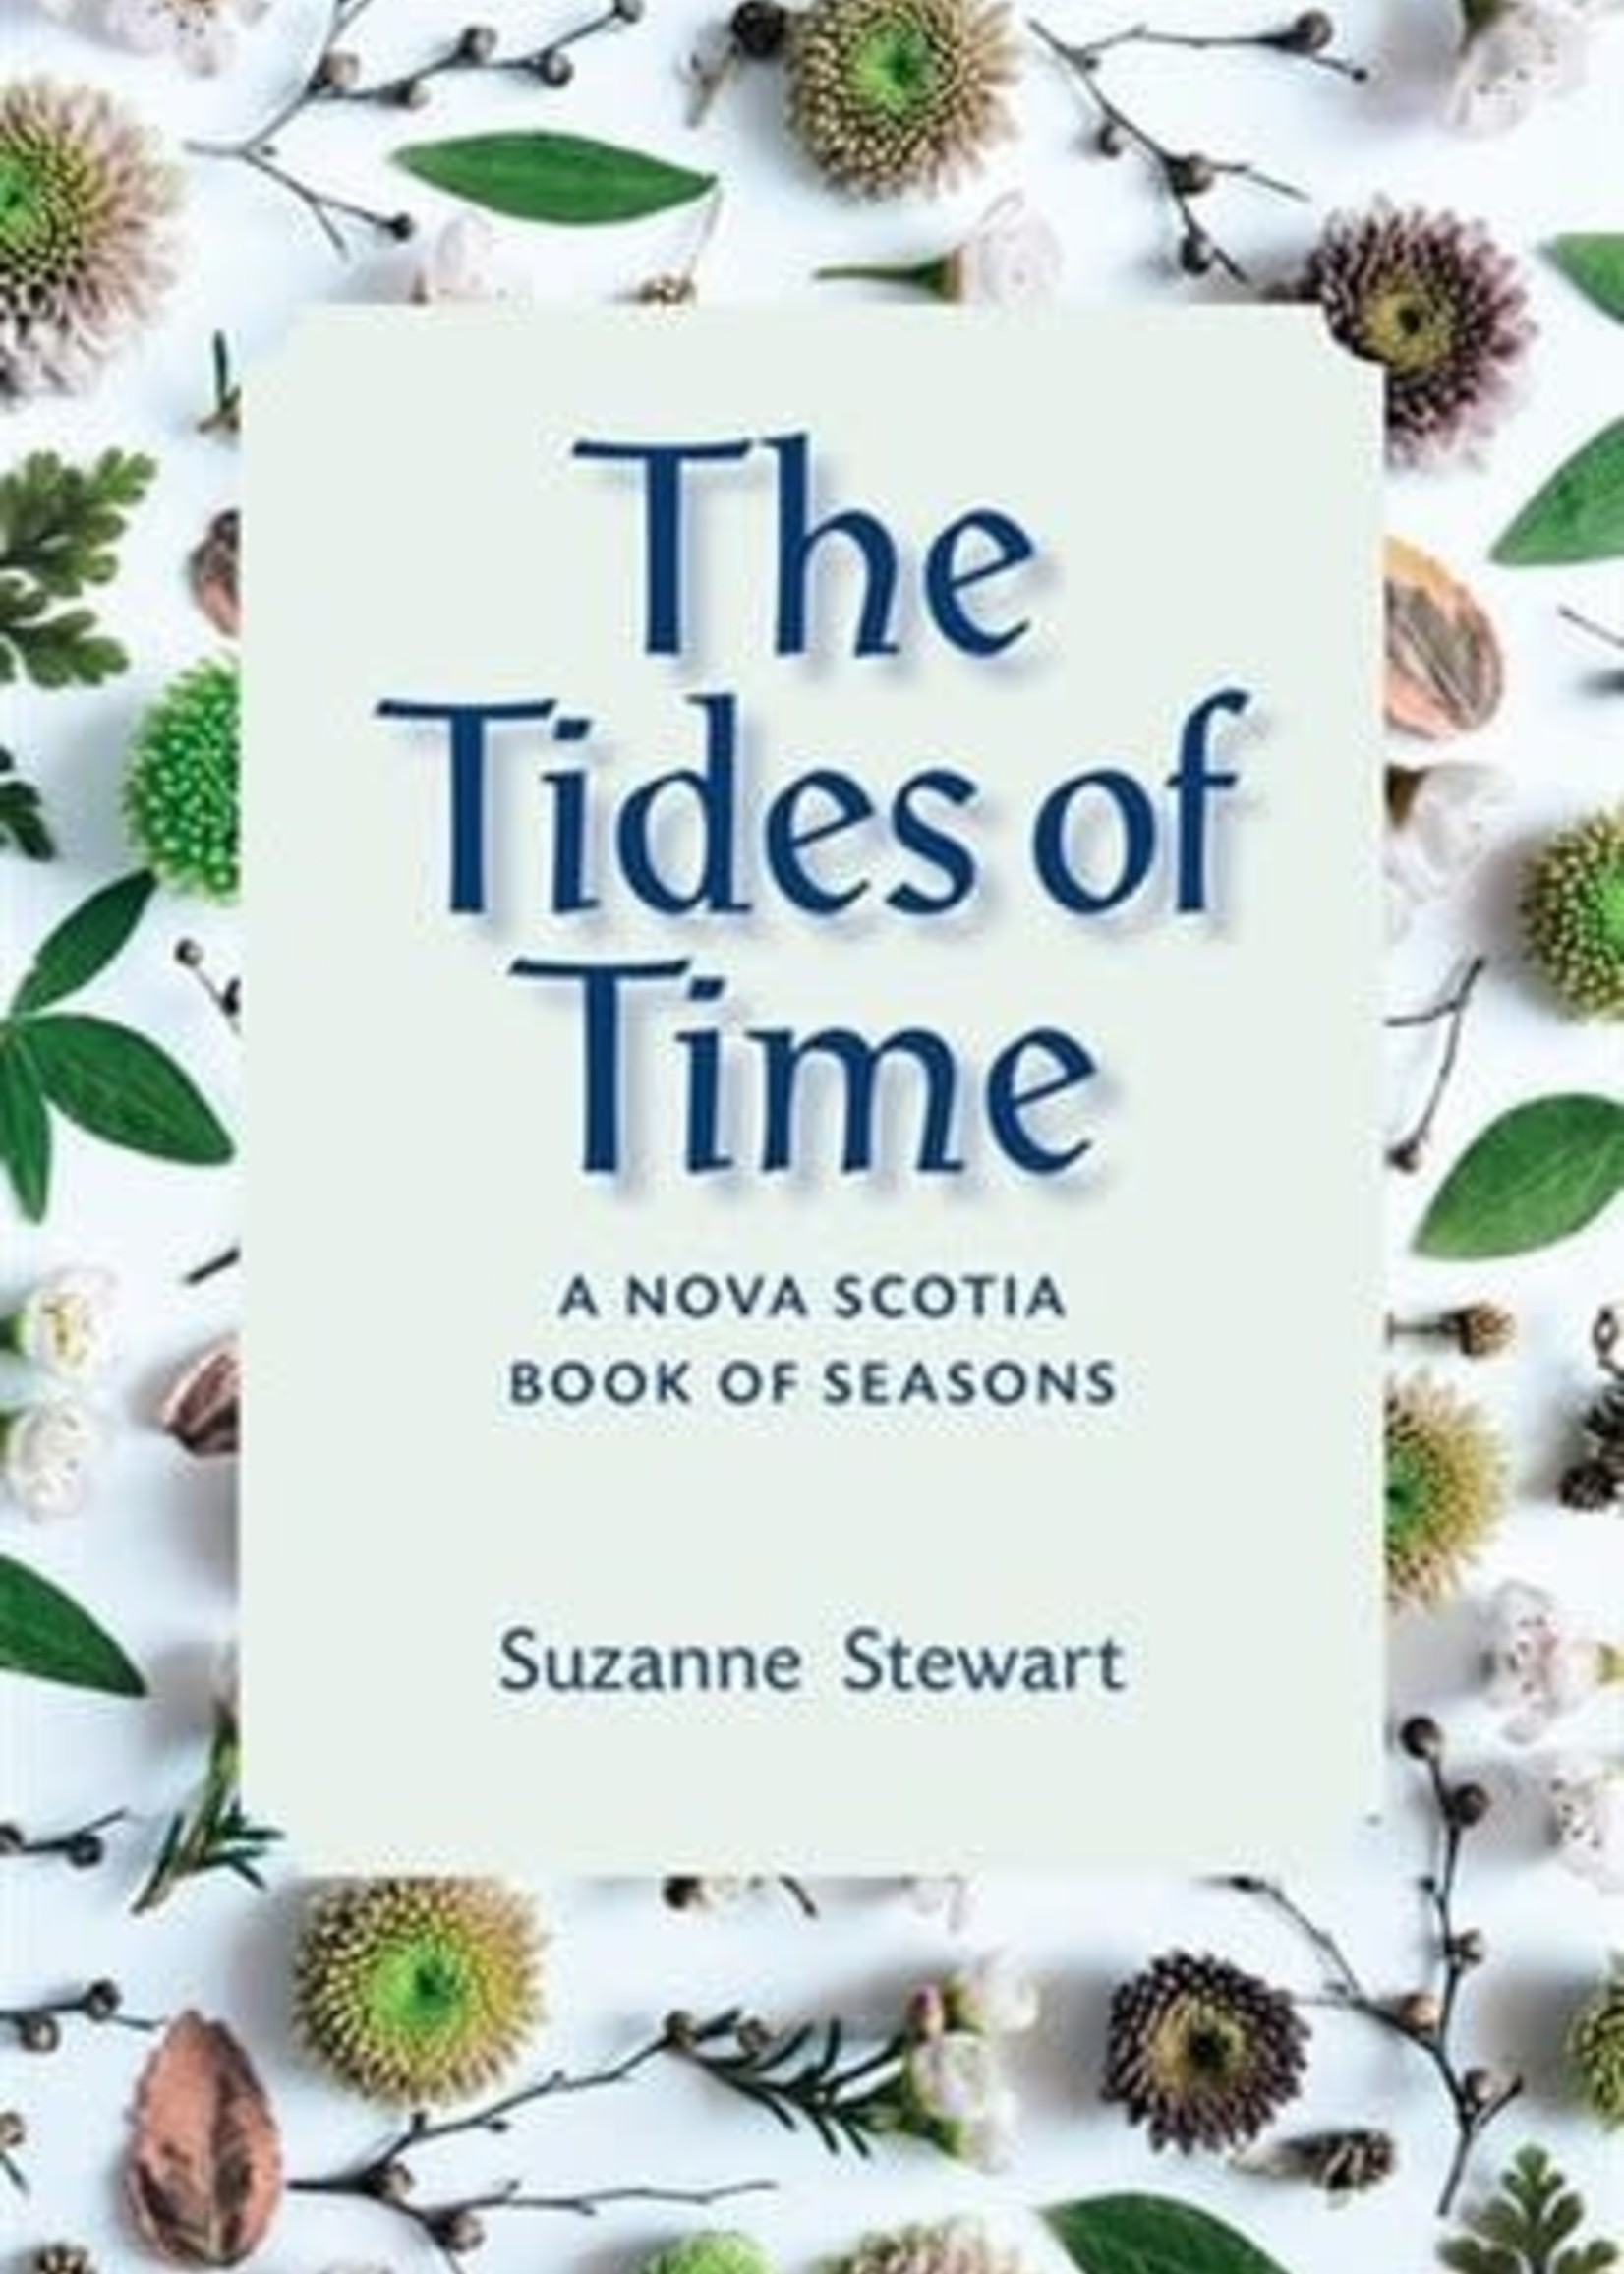 The Tides of Time: A Nova Scotia Book of Seasons by Suzanne Stewart